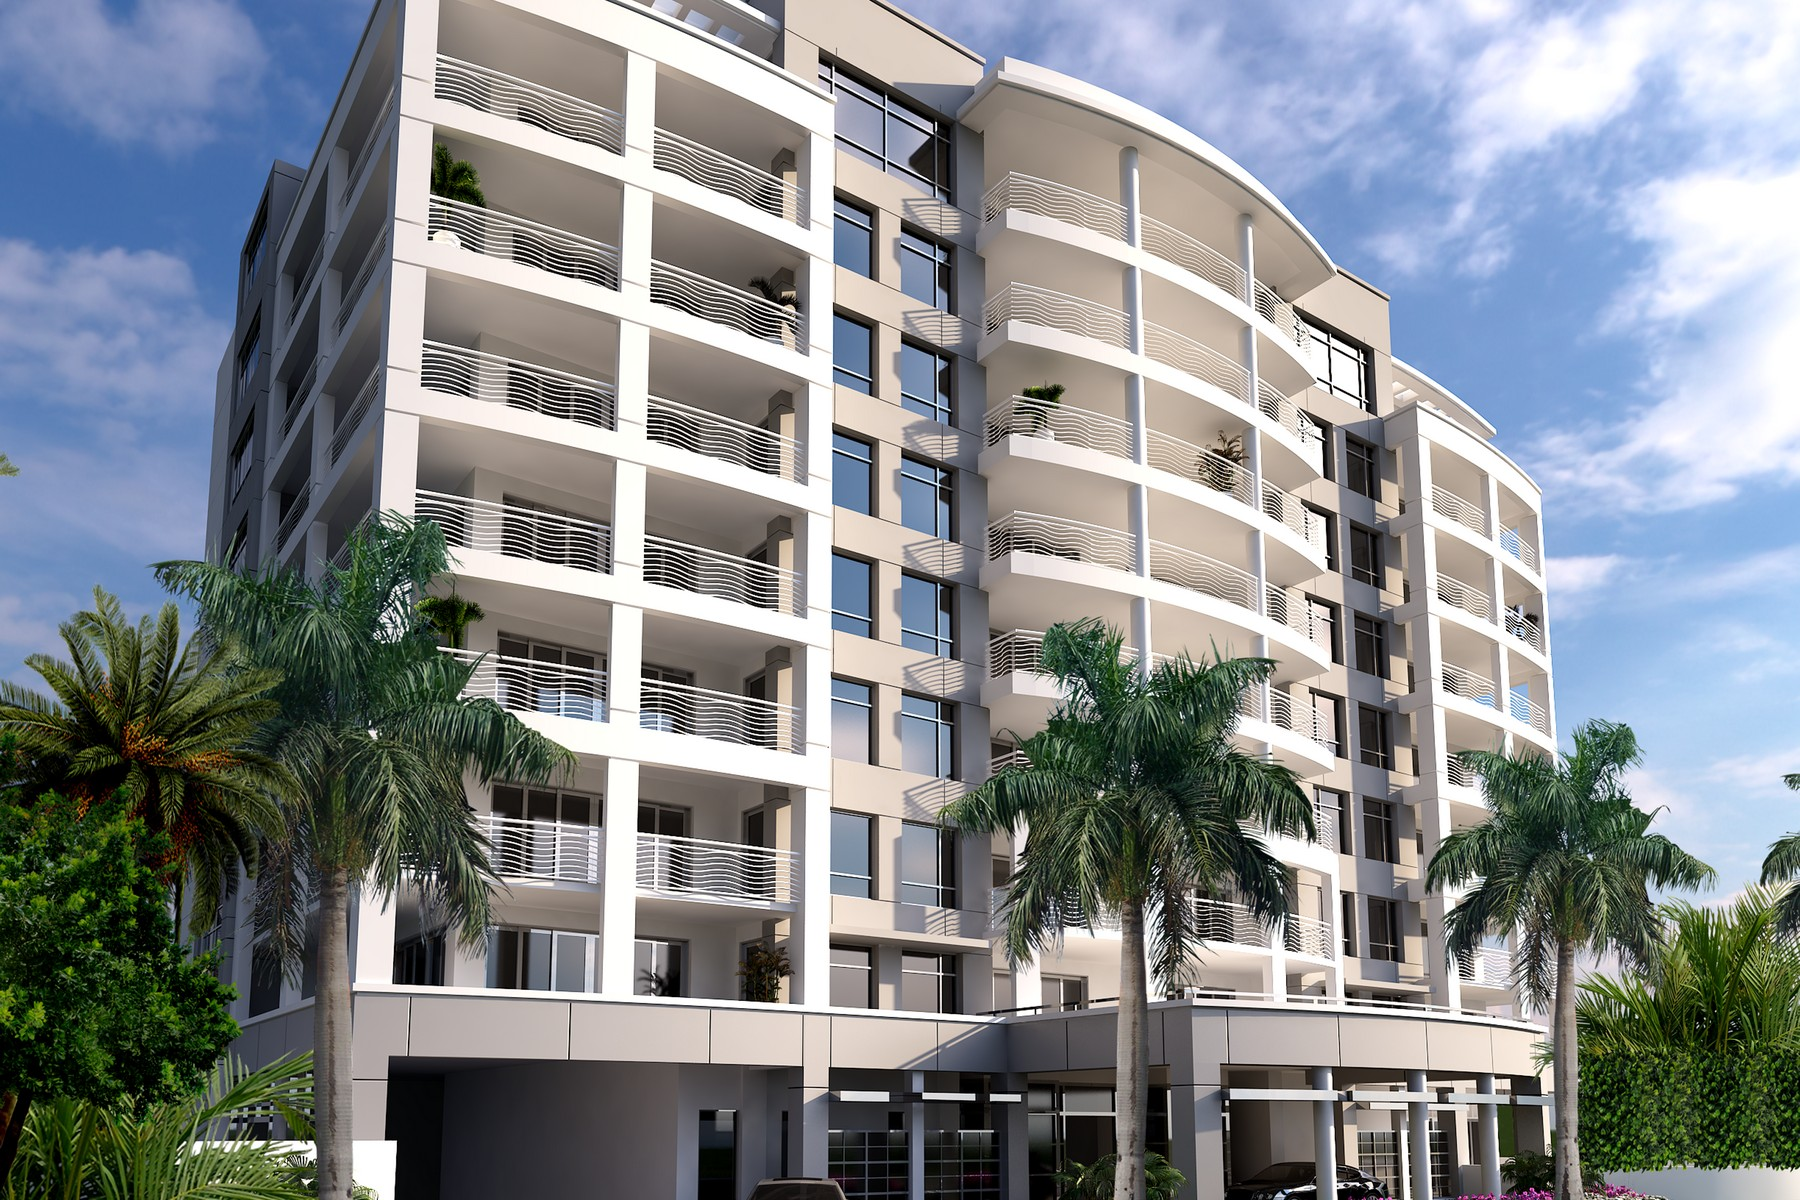 Condominium for Sale at 327 E Royal Palm Rd , 402, Boca Raton, FL 33432 327 E Royal Palm Rd 402 Boca Raton, Florida 33432 United States